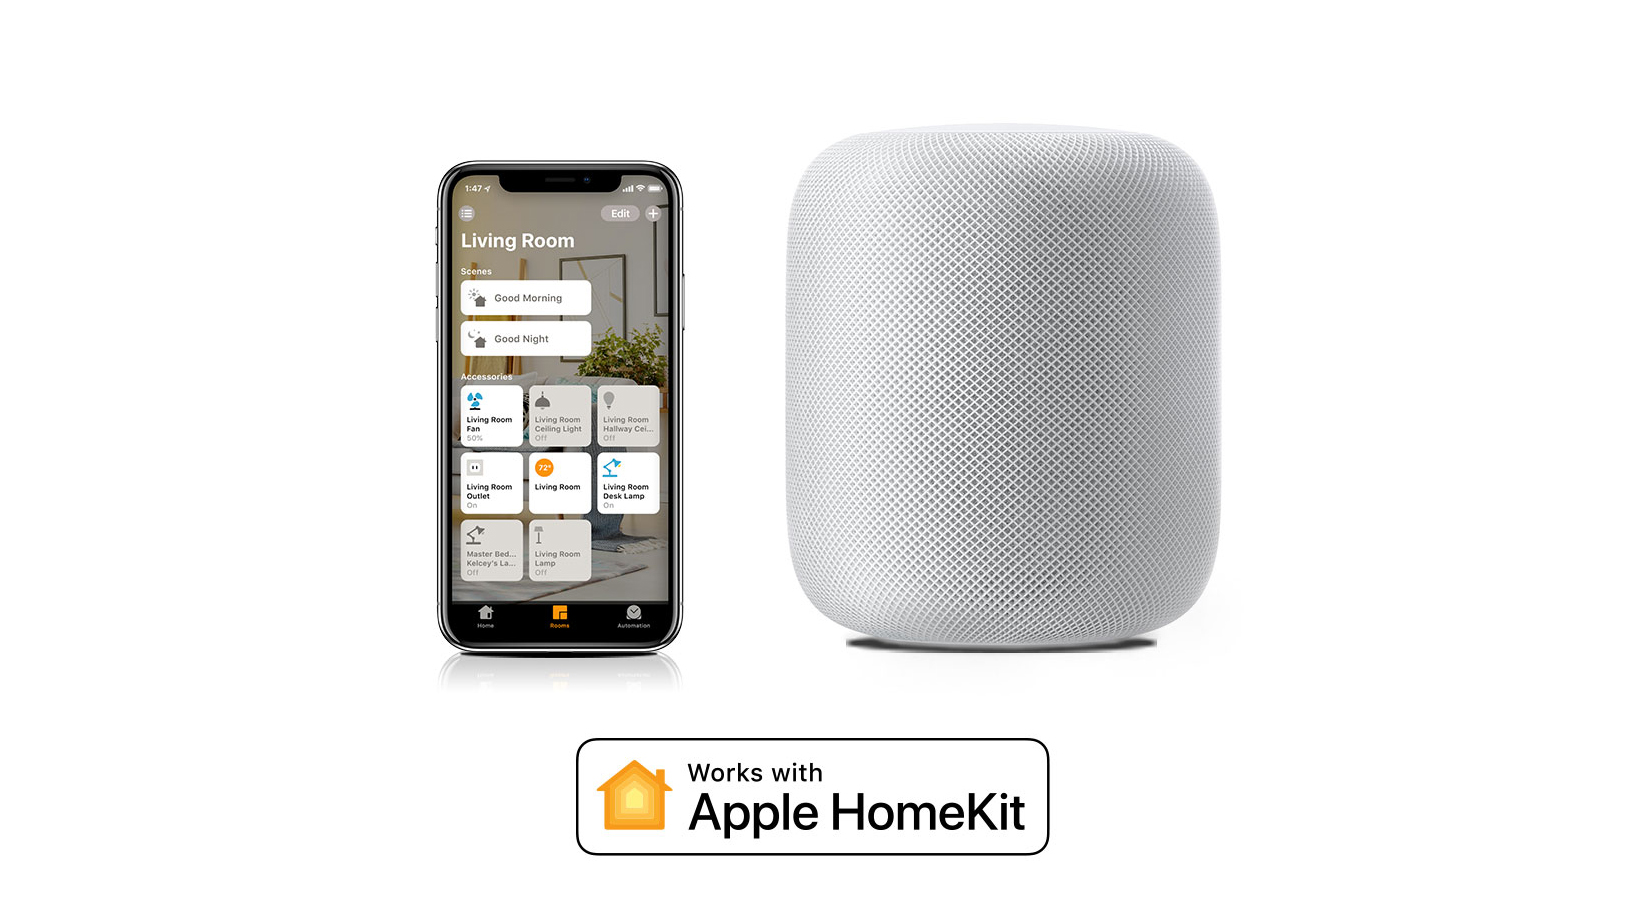 Apple Homekit product line